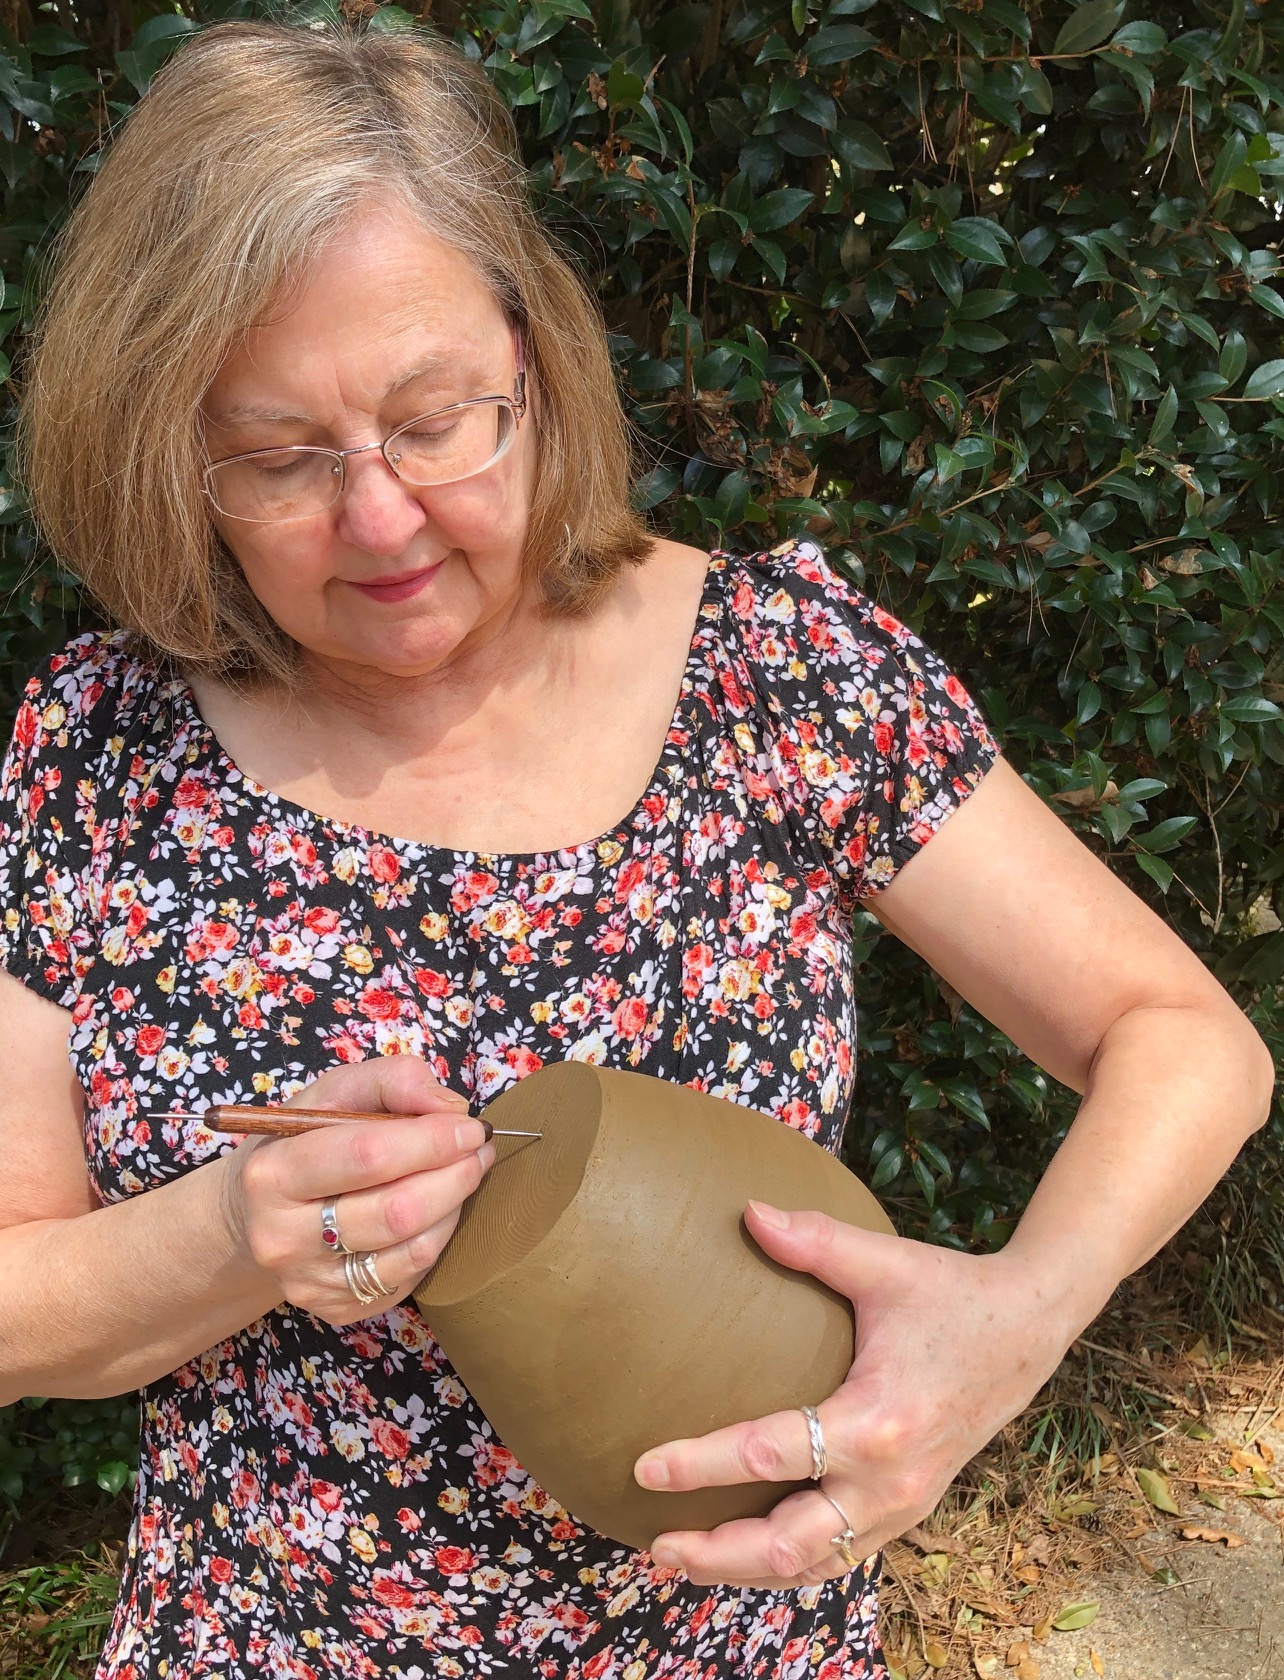 Mary Mayes  I have deep geographic roots and so do my pots. I intend for my connection to place to be present and visible in my pottery. When a future archeologist finds shards from one of my pots, I want them to know from where and when it came. I assume that evidence of the present will be obvious. They'll be able to name my teachers, see what purchased tools I used and generally read the inevitable influence of the internet and modern life. But I also want them to be able to see the influences of history: the traditional Georgia folk pottery and that of the Creek and Cherokee people who lived here before us. When you handle one of my pots, I want you to feel a connection to me, as well as to this geographically, botanically, historically and culturally rich place we live. I throw my pots with Georgia sourced red clay, and finish them with glazes I created from Georgia minerals and traditional slip glazes fired to stoneware temperatures. I am originally from Atlanta (with strong family roots in rural Georgia), but have lived here in Athens since 1976. I began making pottery in 1999 and have been part of the Good Dirt community off and on ever since.